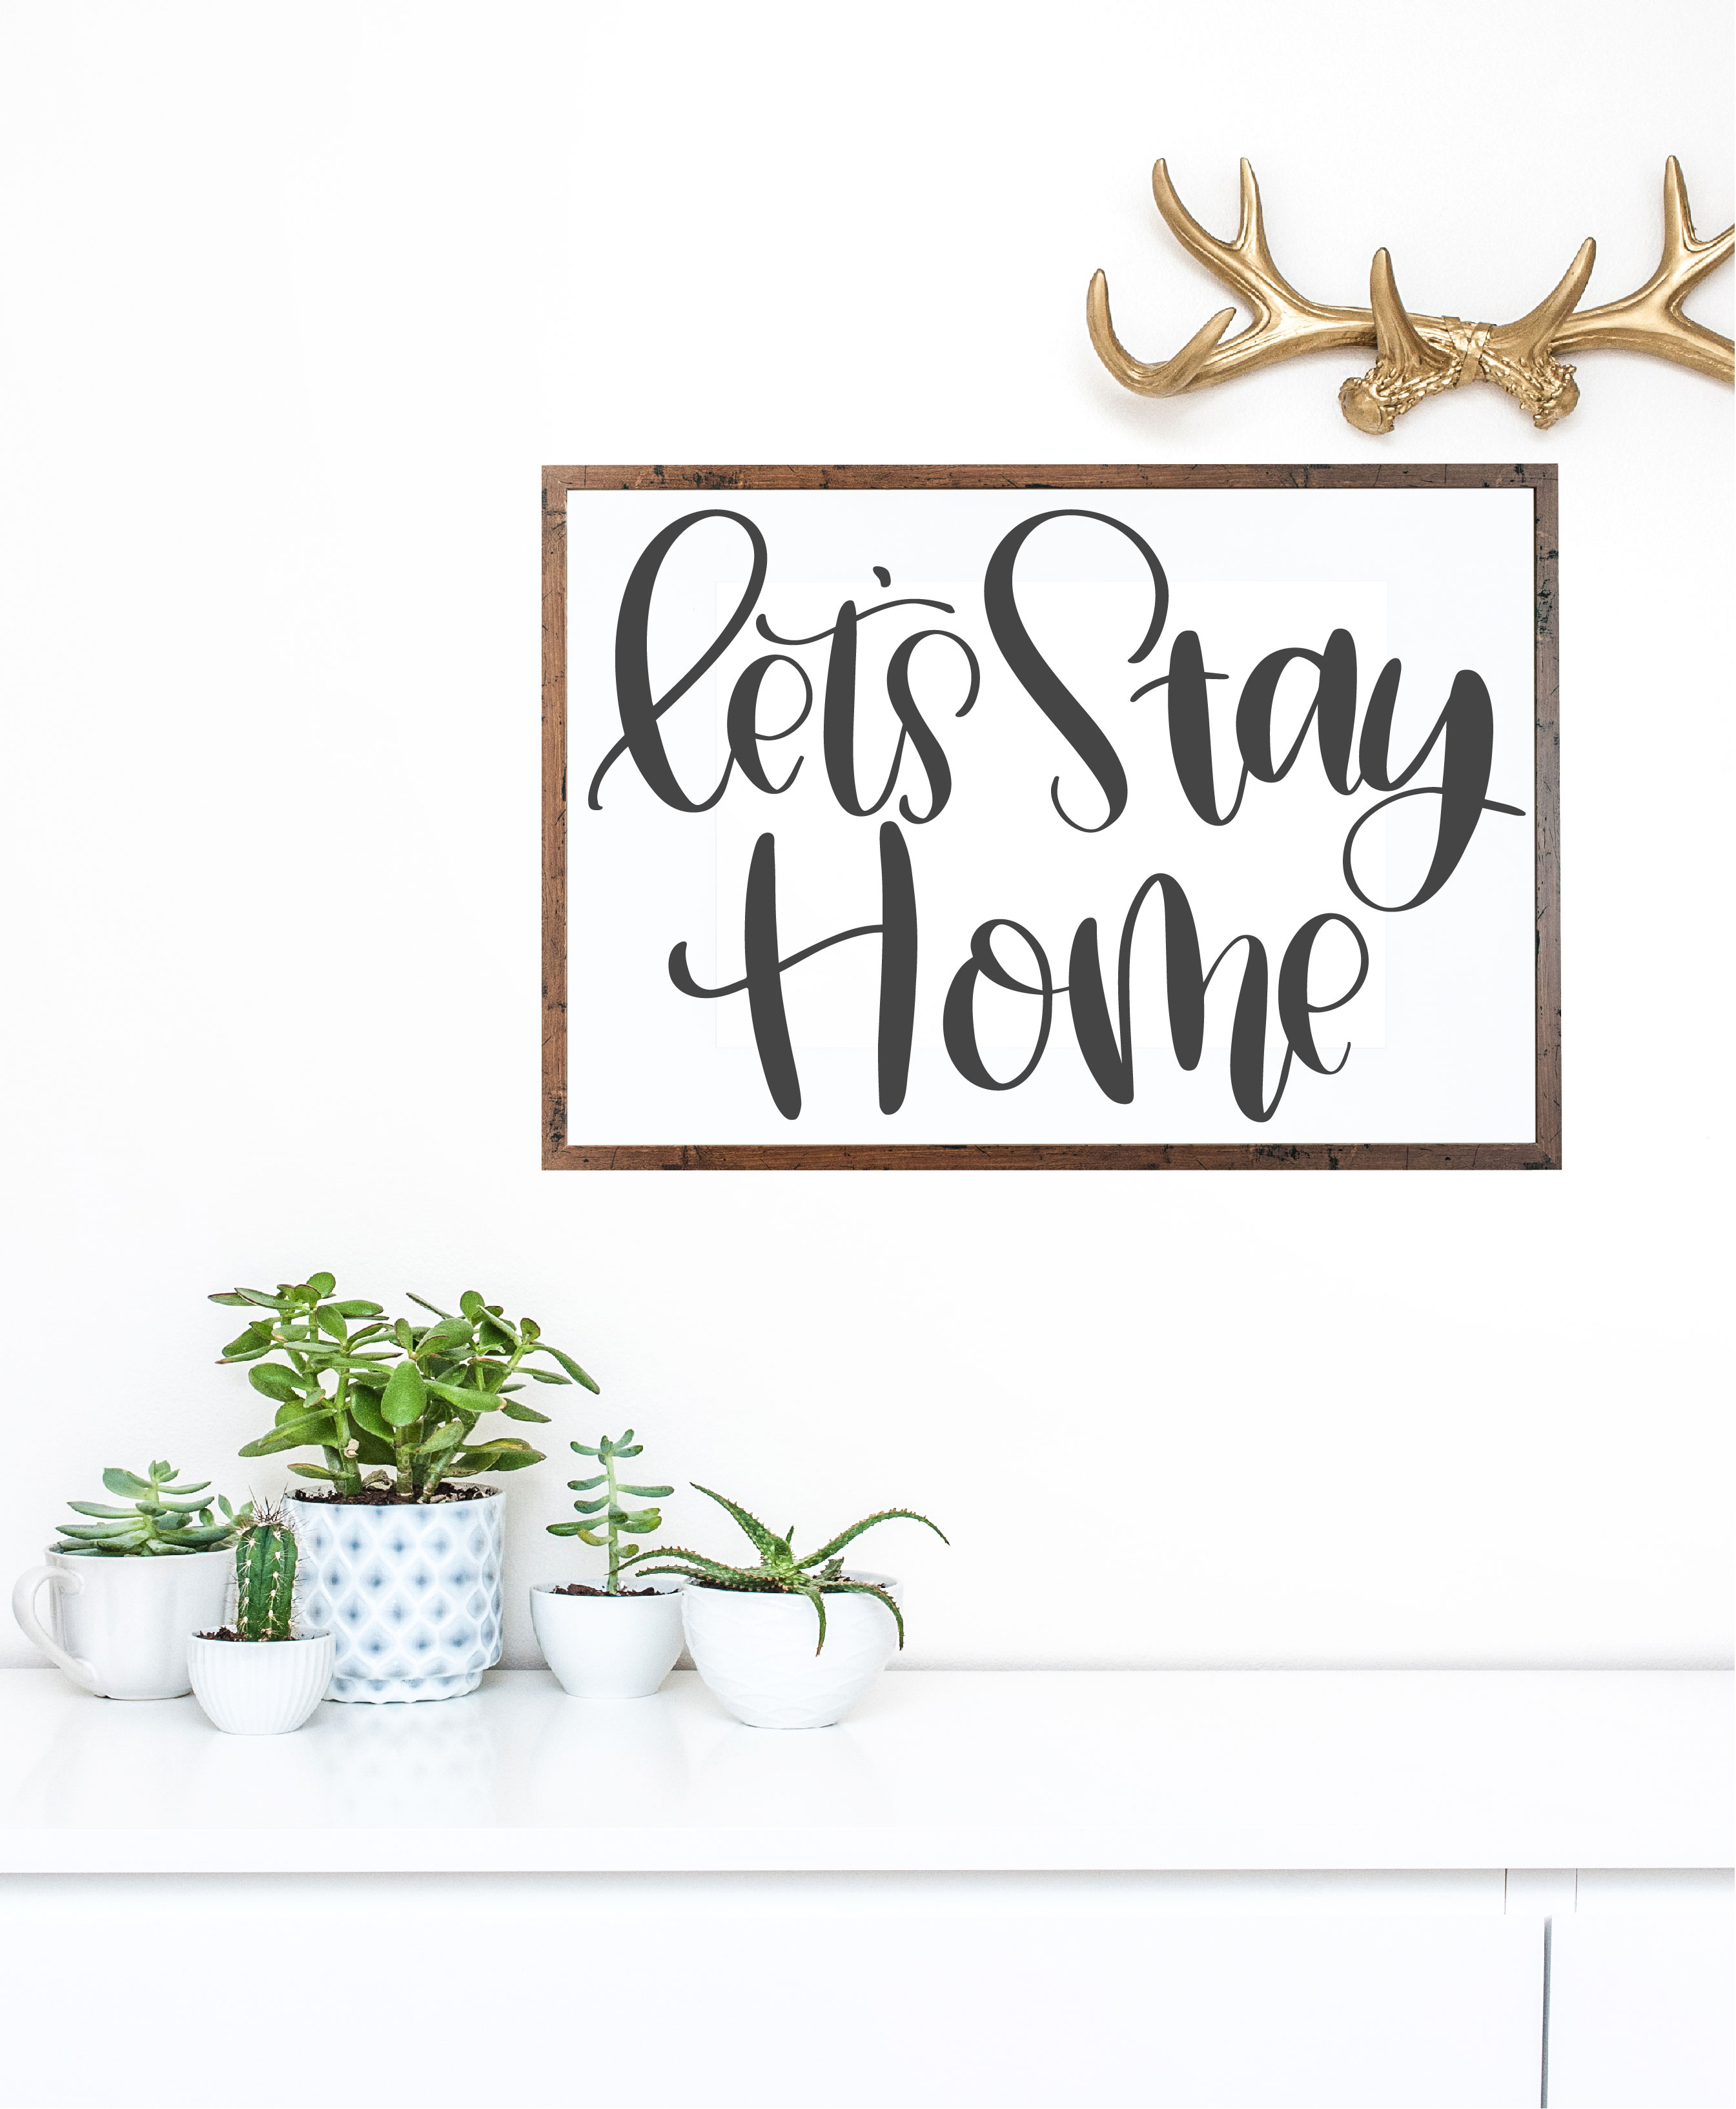 Let's Stay Home - Hand Lettered SVG example image 1